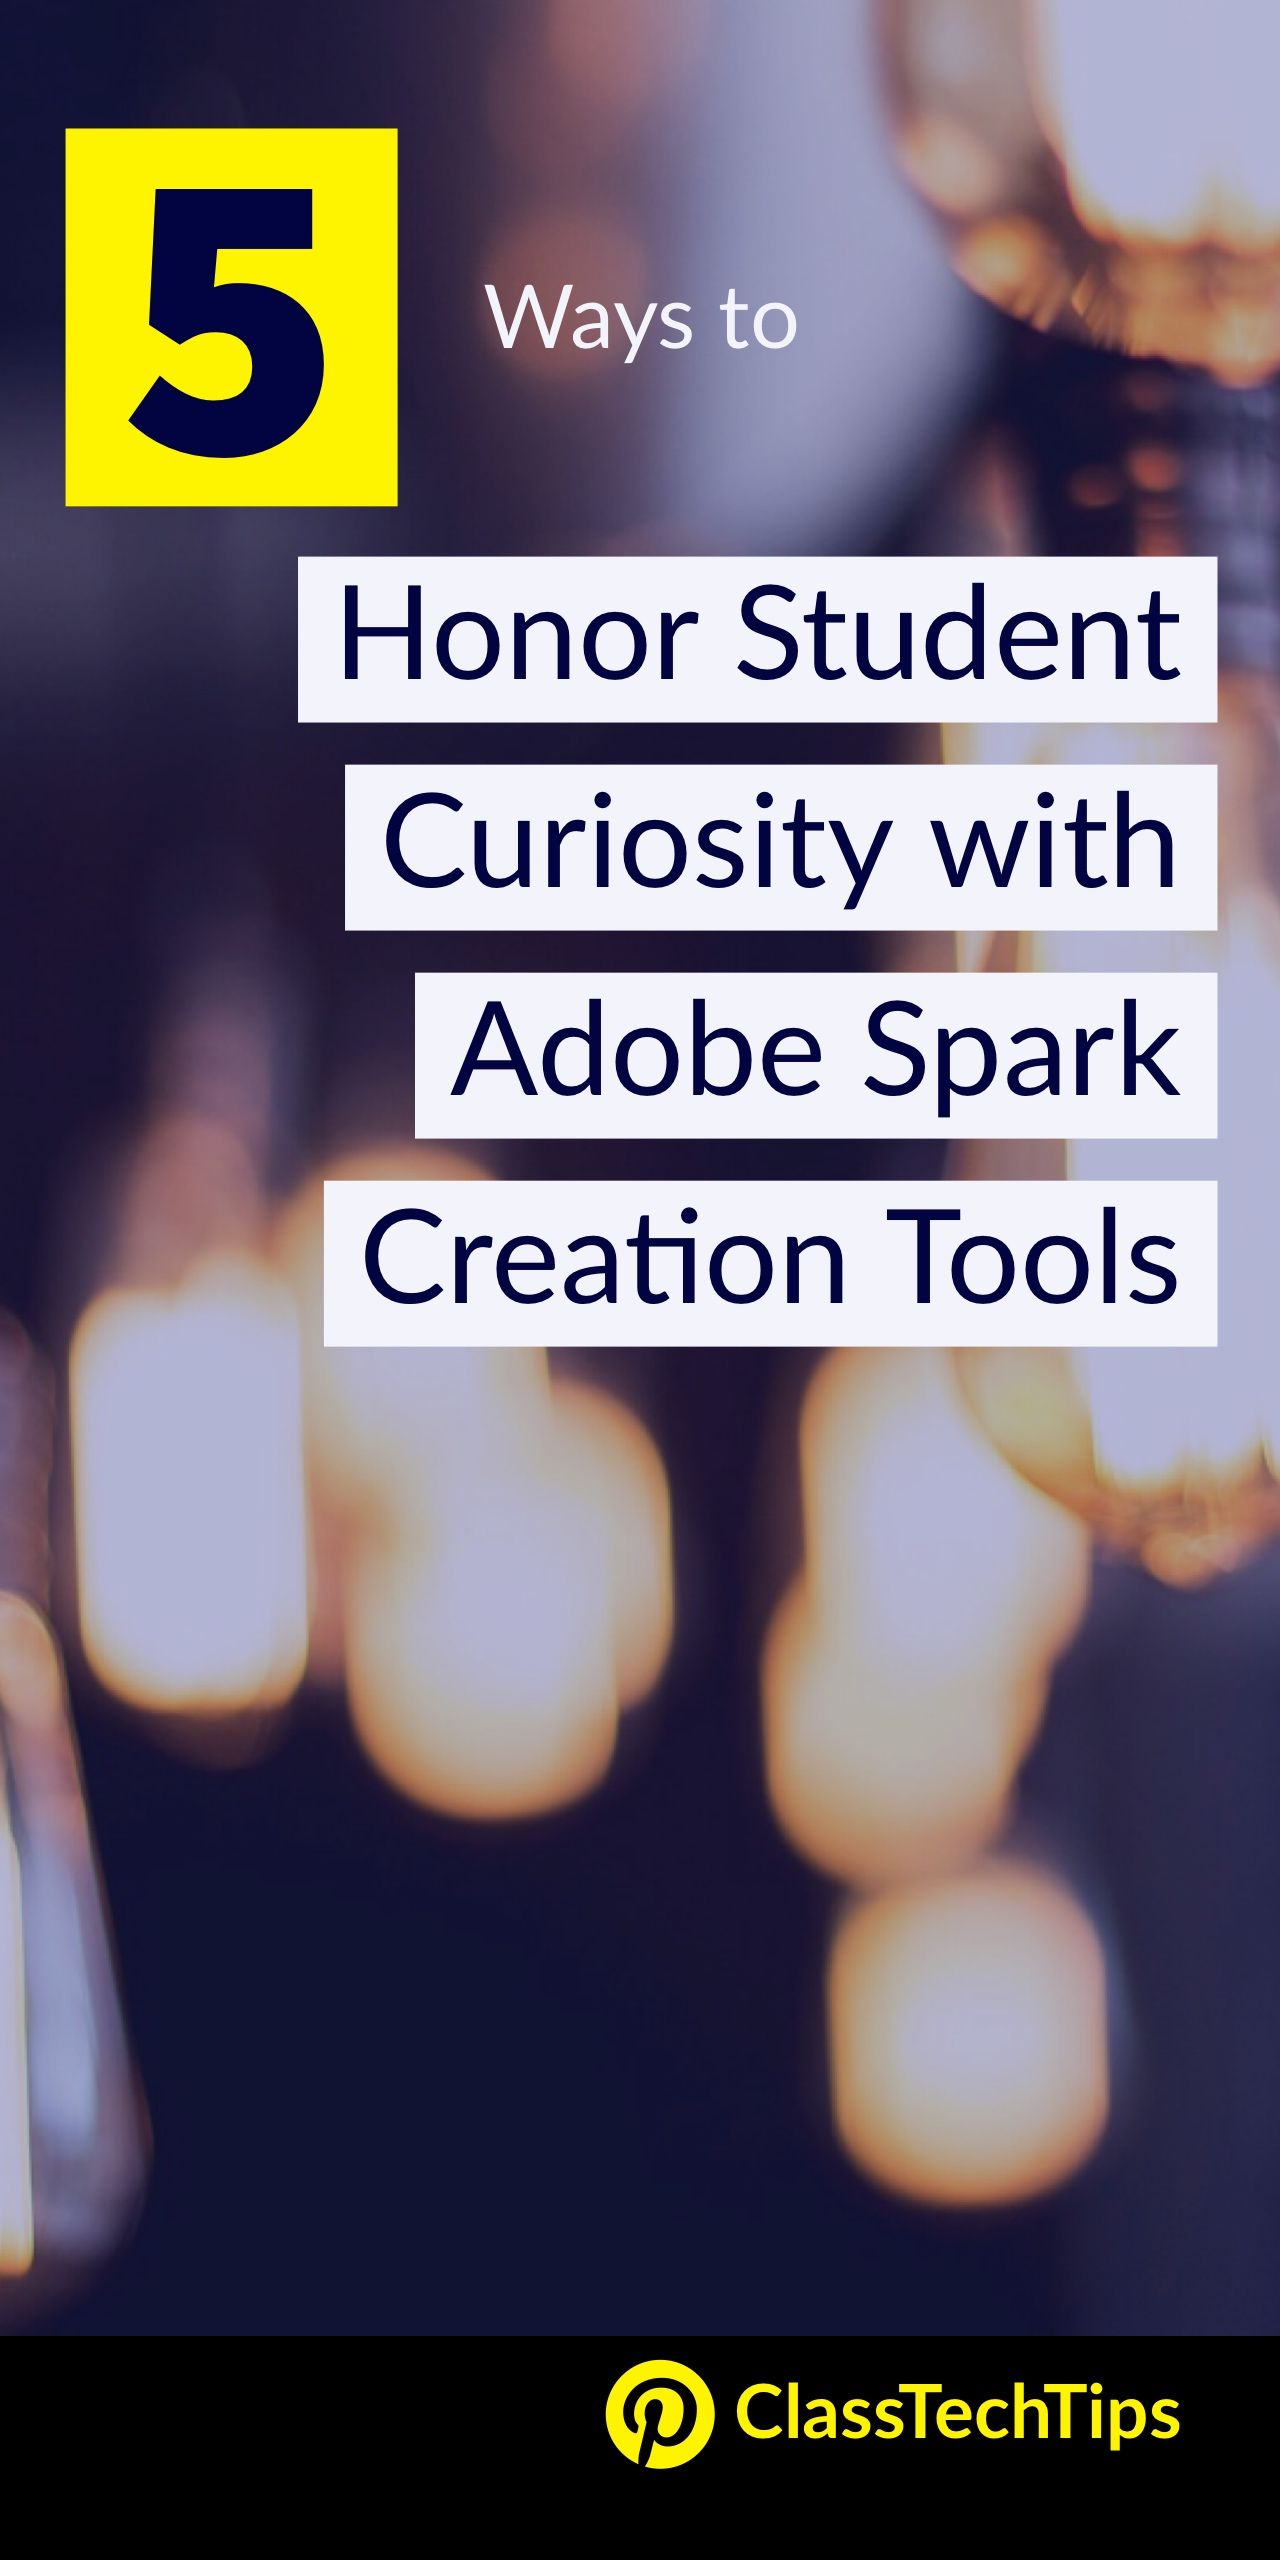 5 Ways to Honor Student Curiosity with Adobe Spark